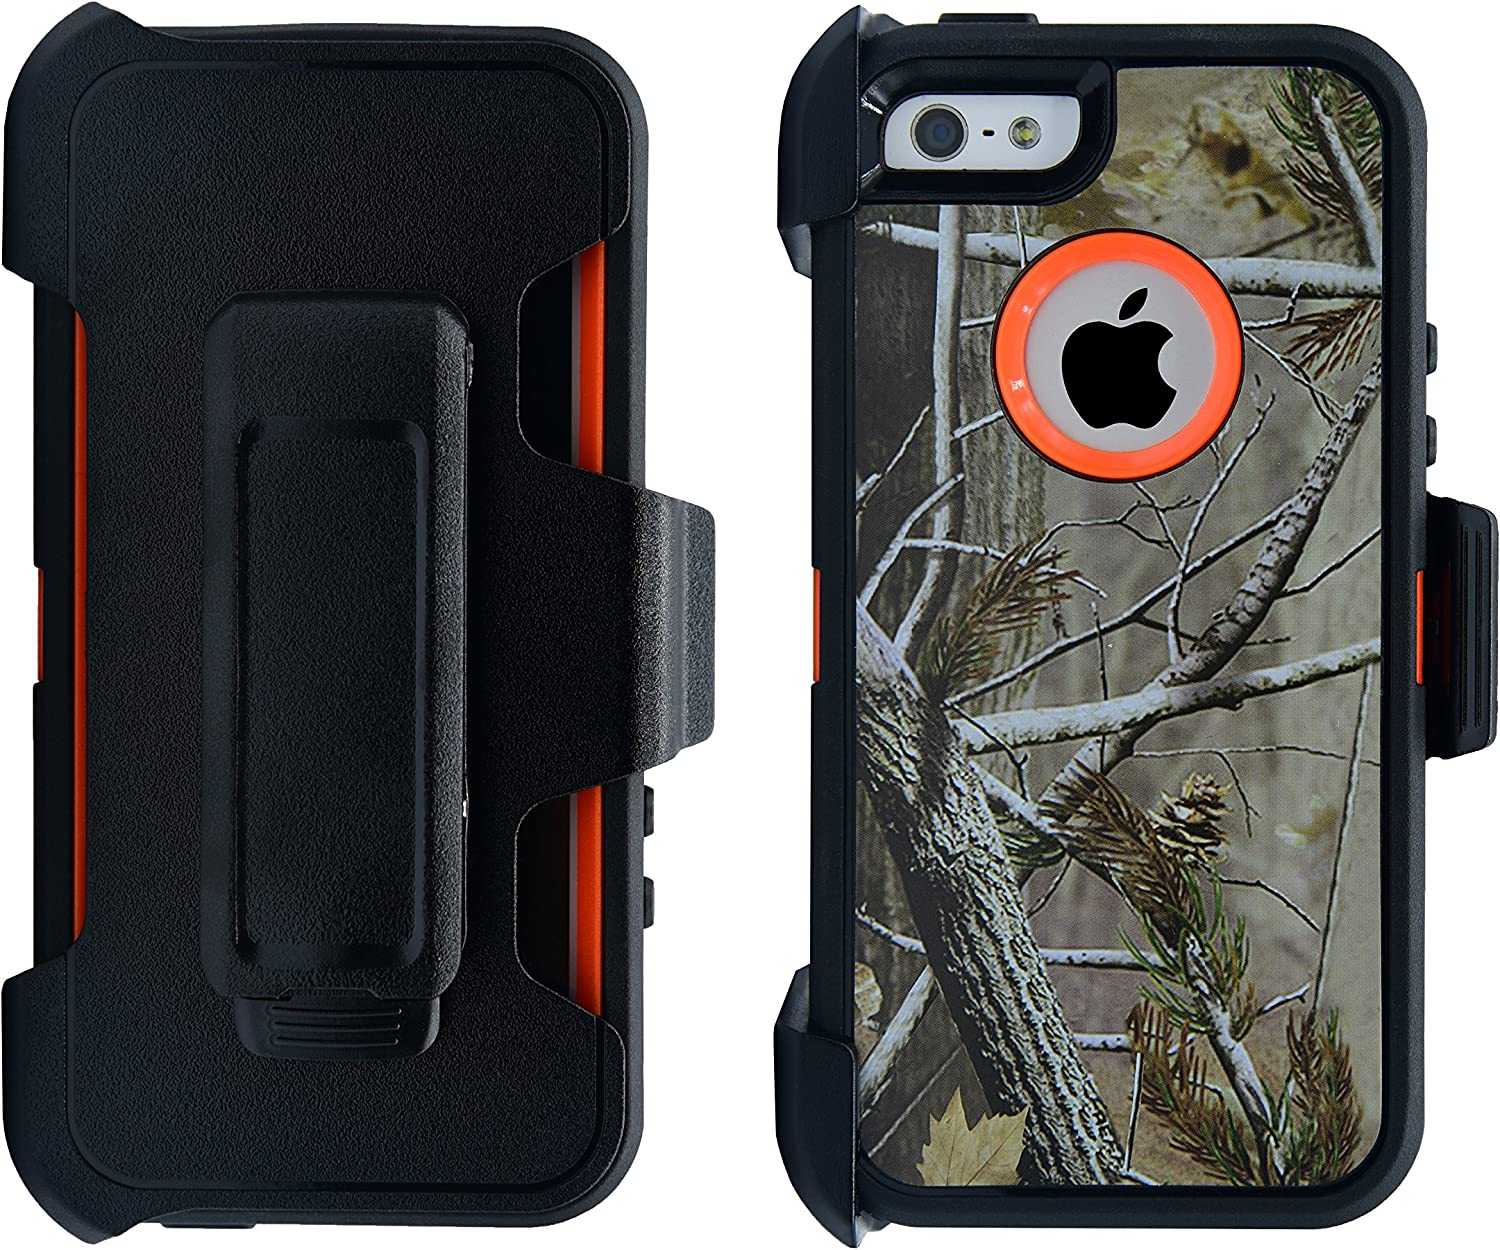 Full Body Life-Time Protection WallSkiN Turtle Series Holster Case for iPhone 5 // 5S // SE Black//Black Protective Heavy Duty /& Carrying Belt Clip 3-Layer with Screen Protector